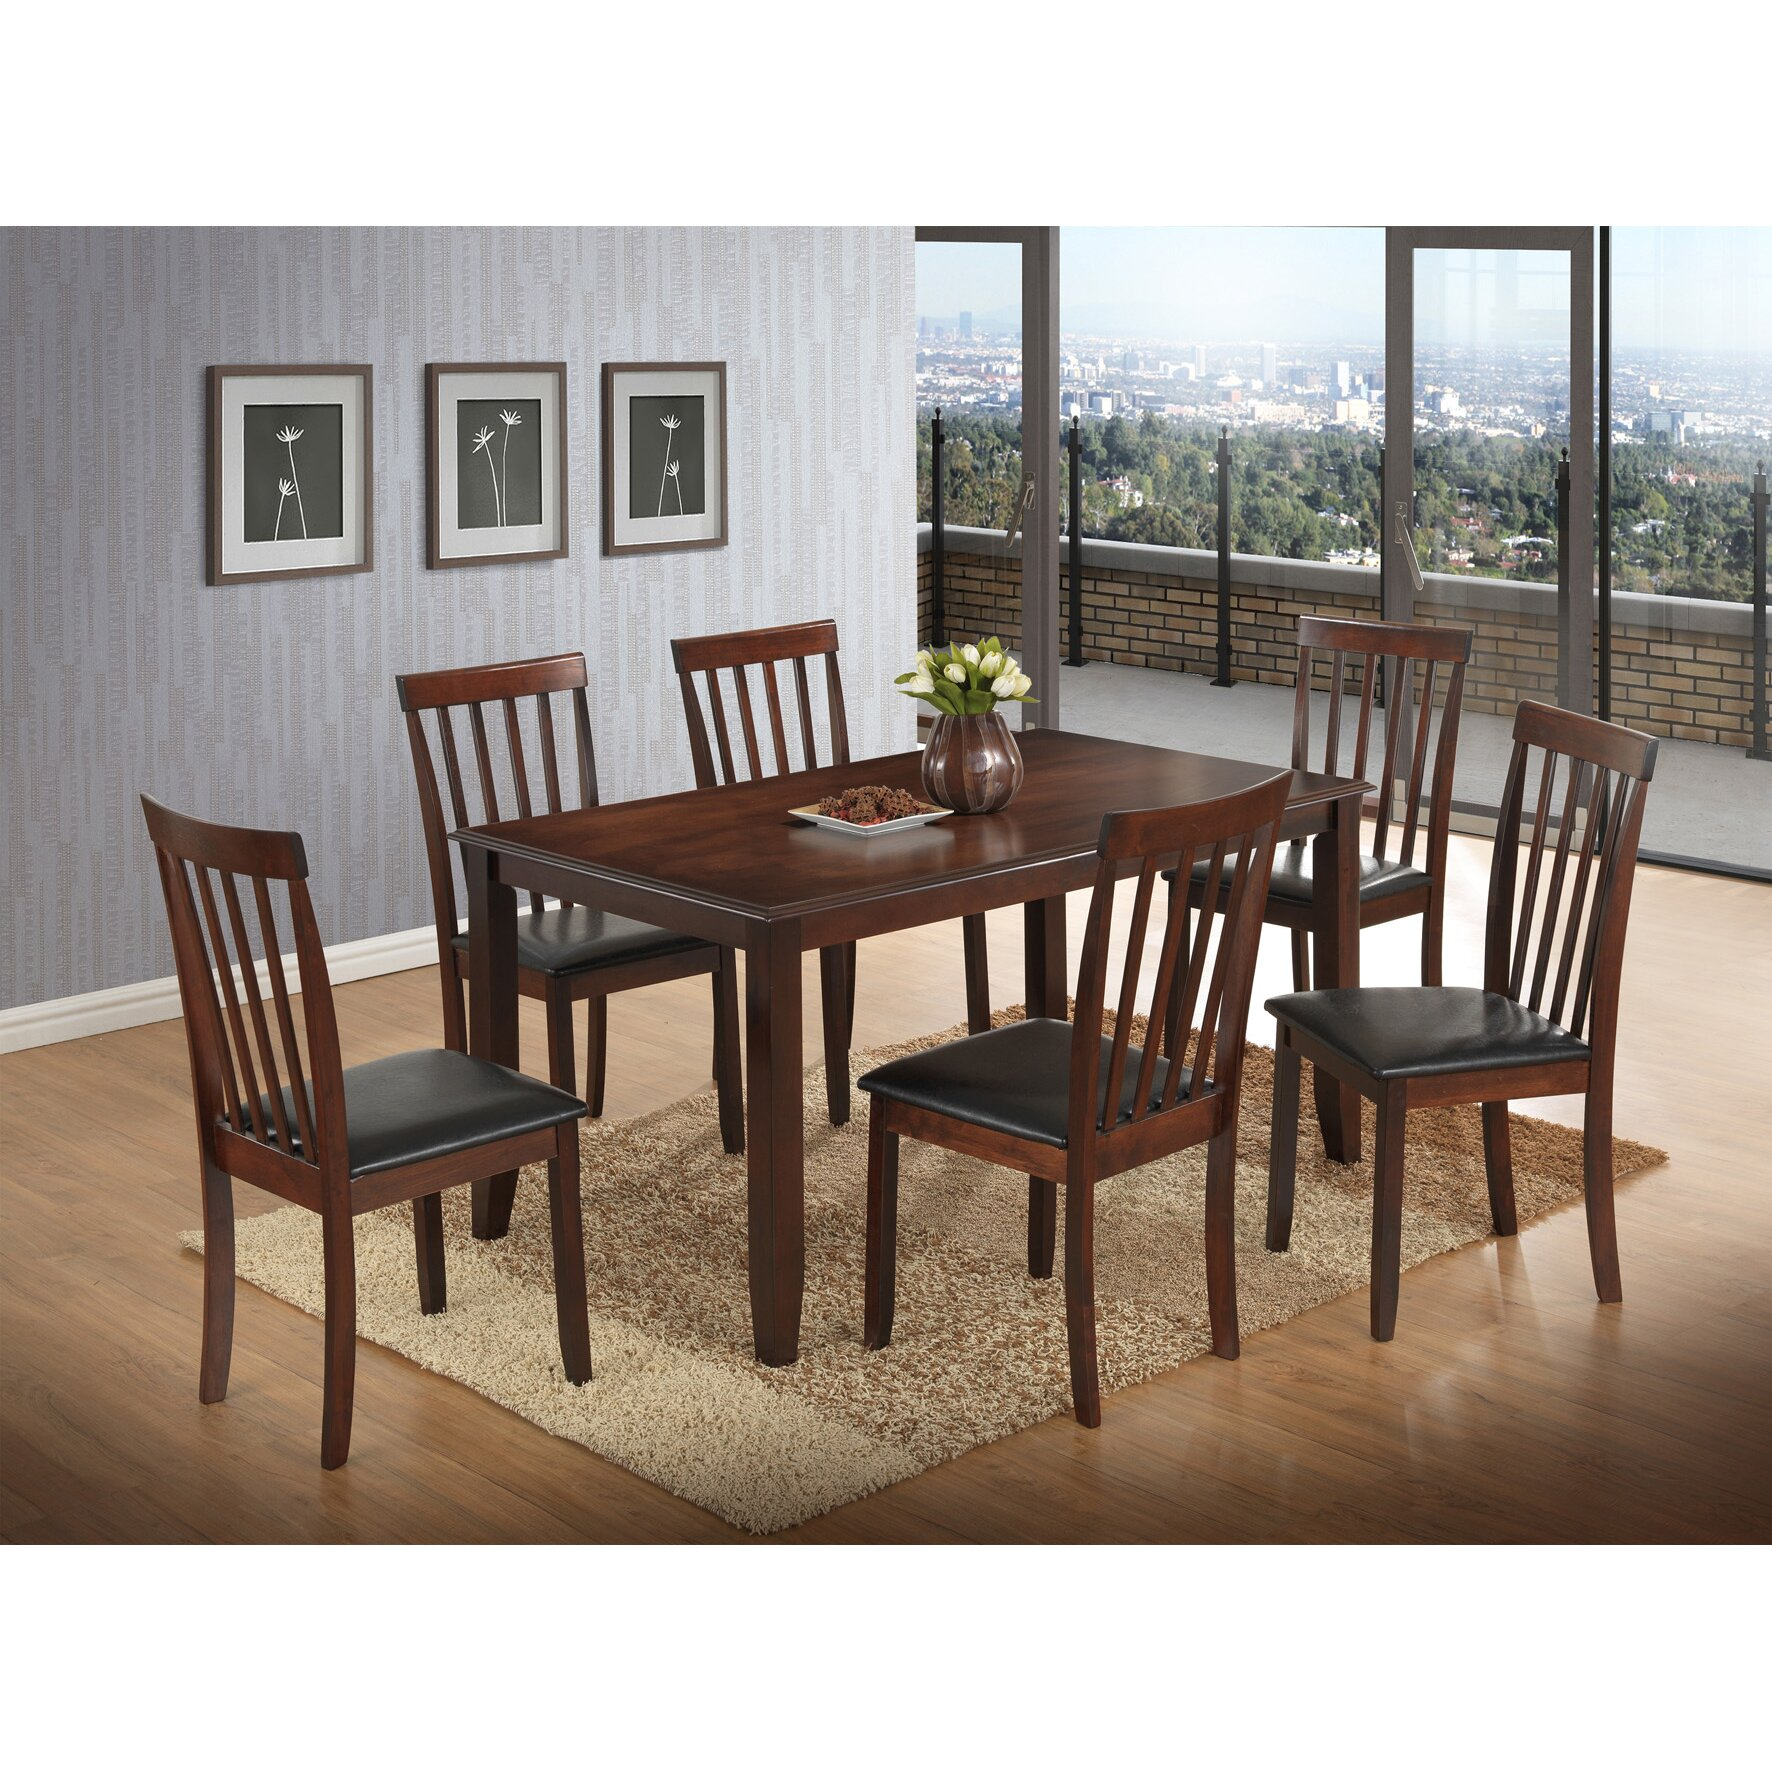 Best Quality Furniture 7 Piece Dining Set Reviews Wayfair